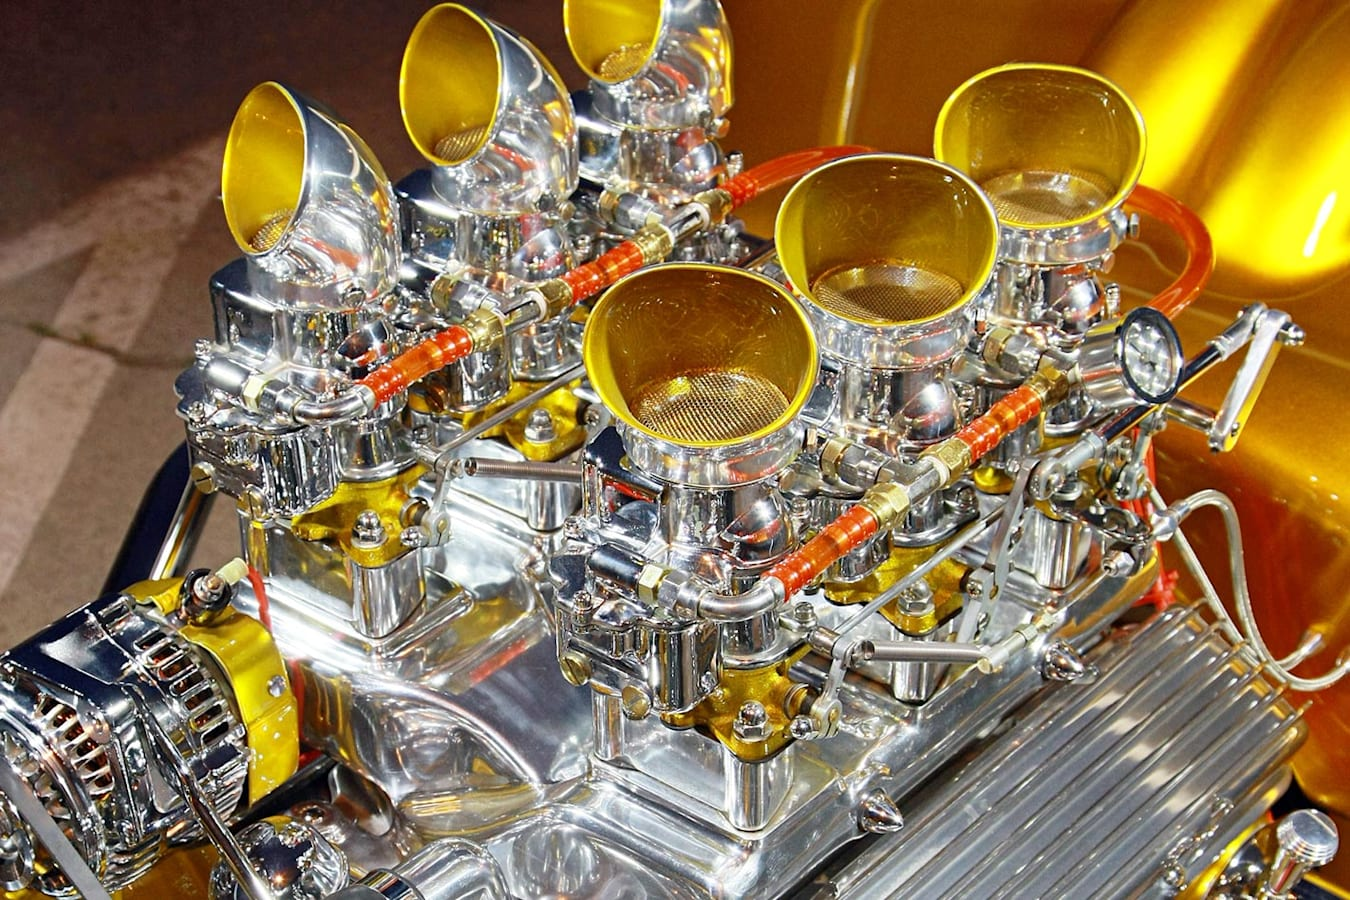 Ford Model T trumpets